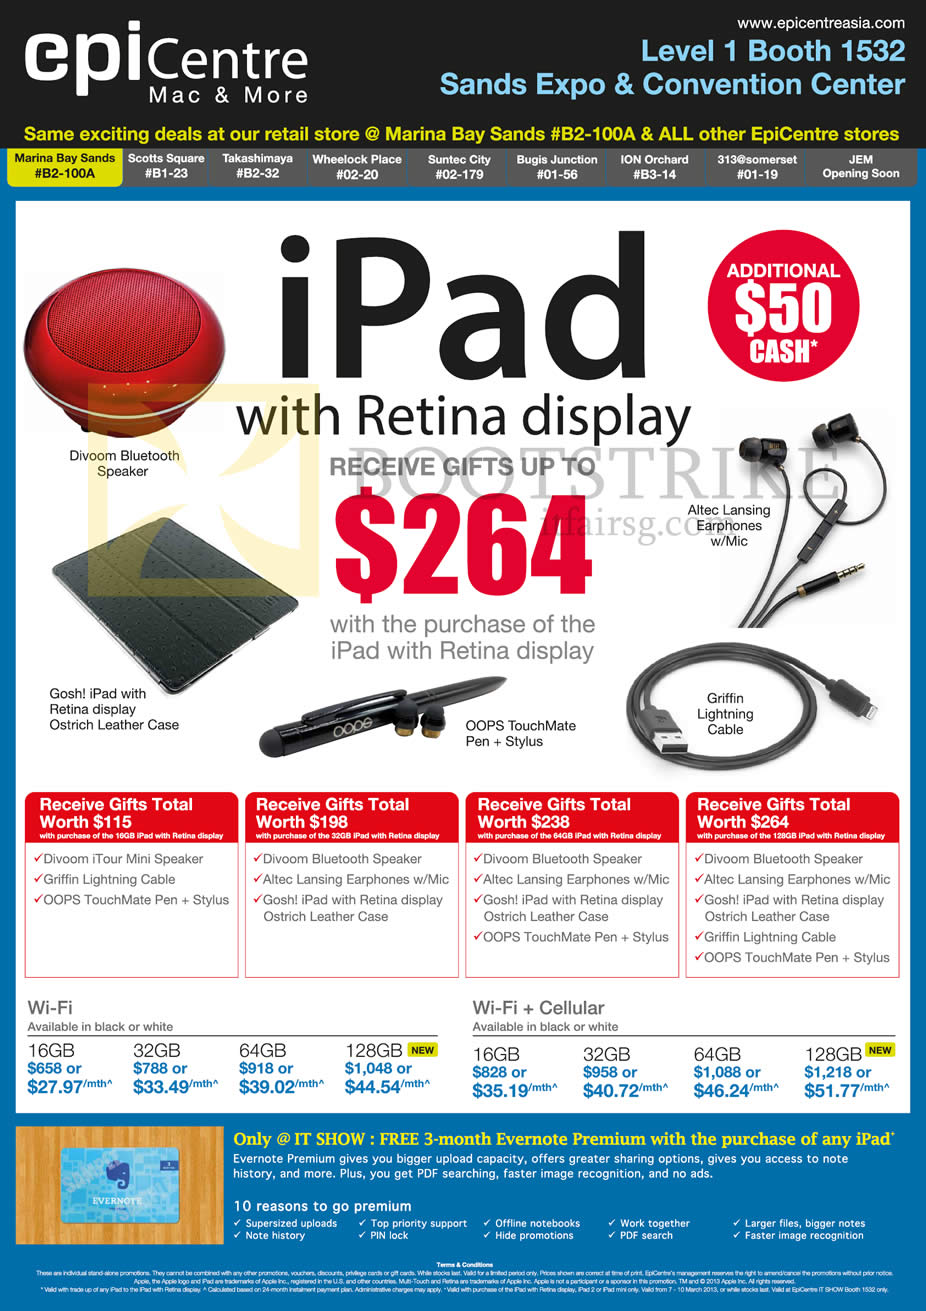 IT SHOW 2013 price list image brochure of EpiCentre Apple IPad 4 Tablet, Wi-Fi, Cellular